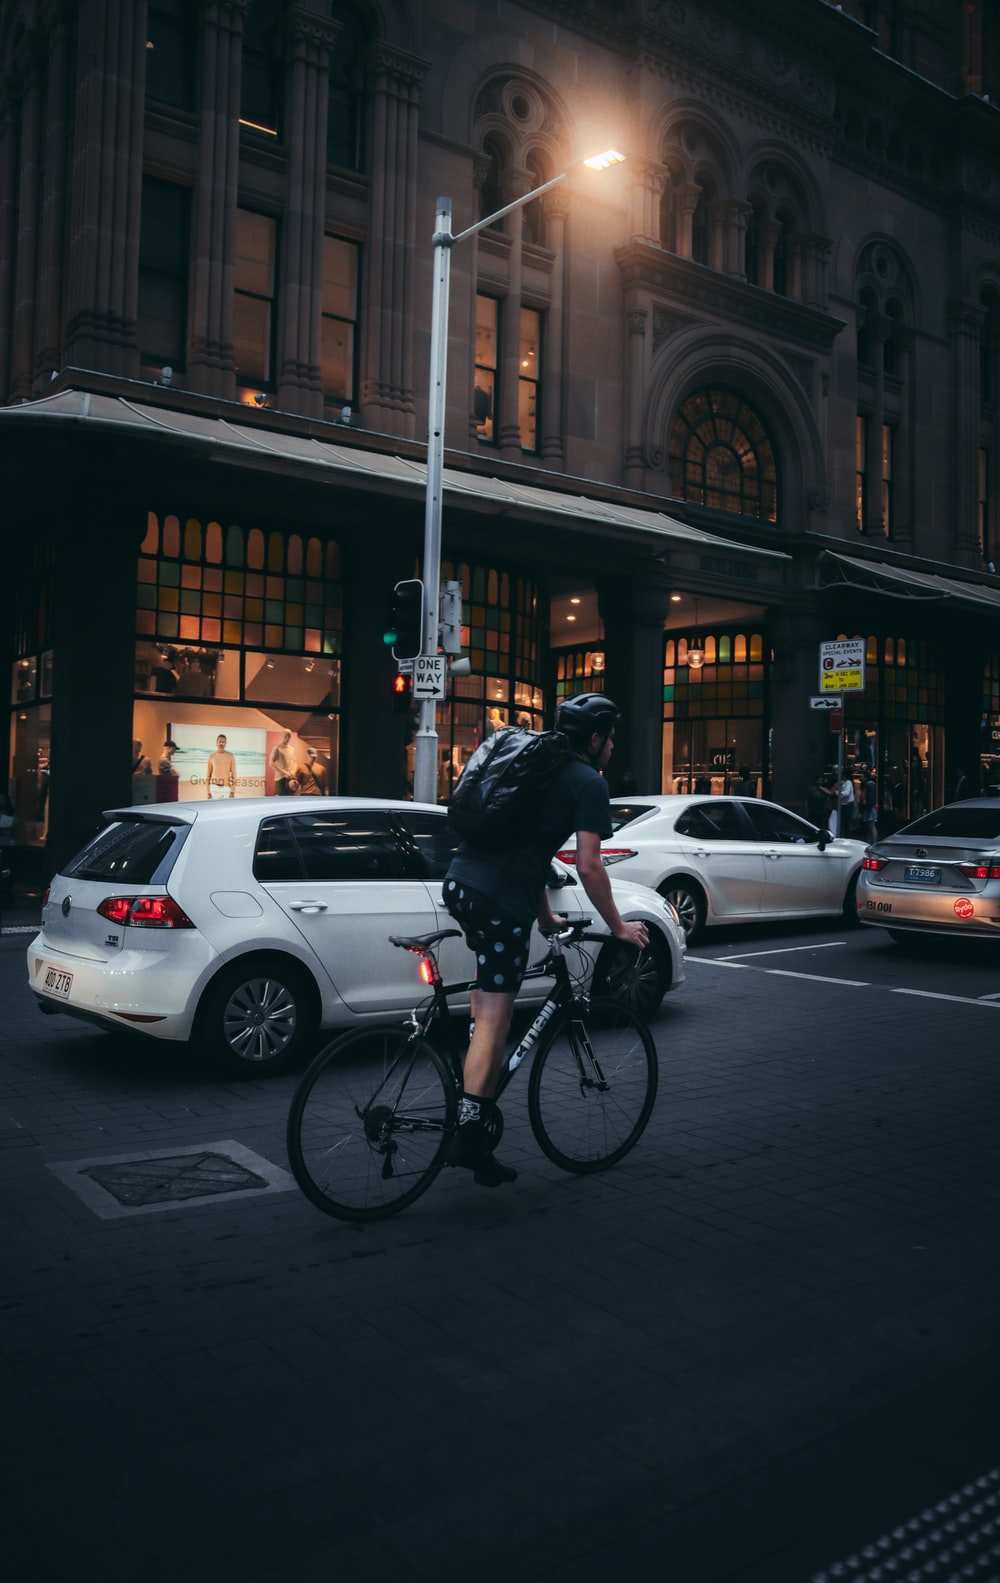 man in black jacket riding bicycle on road during daytime